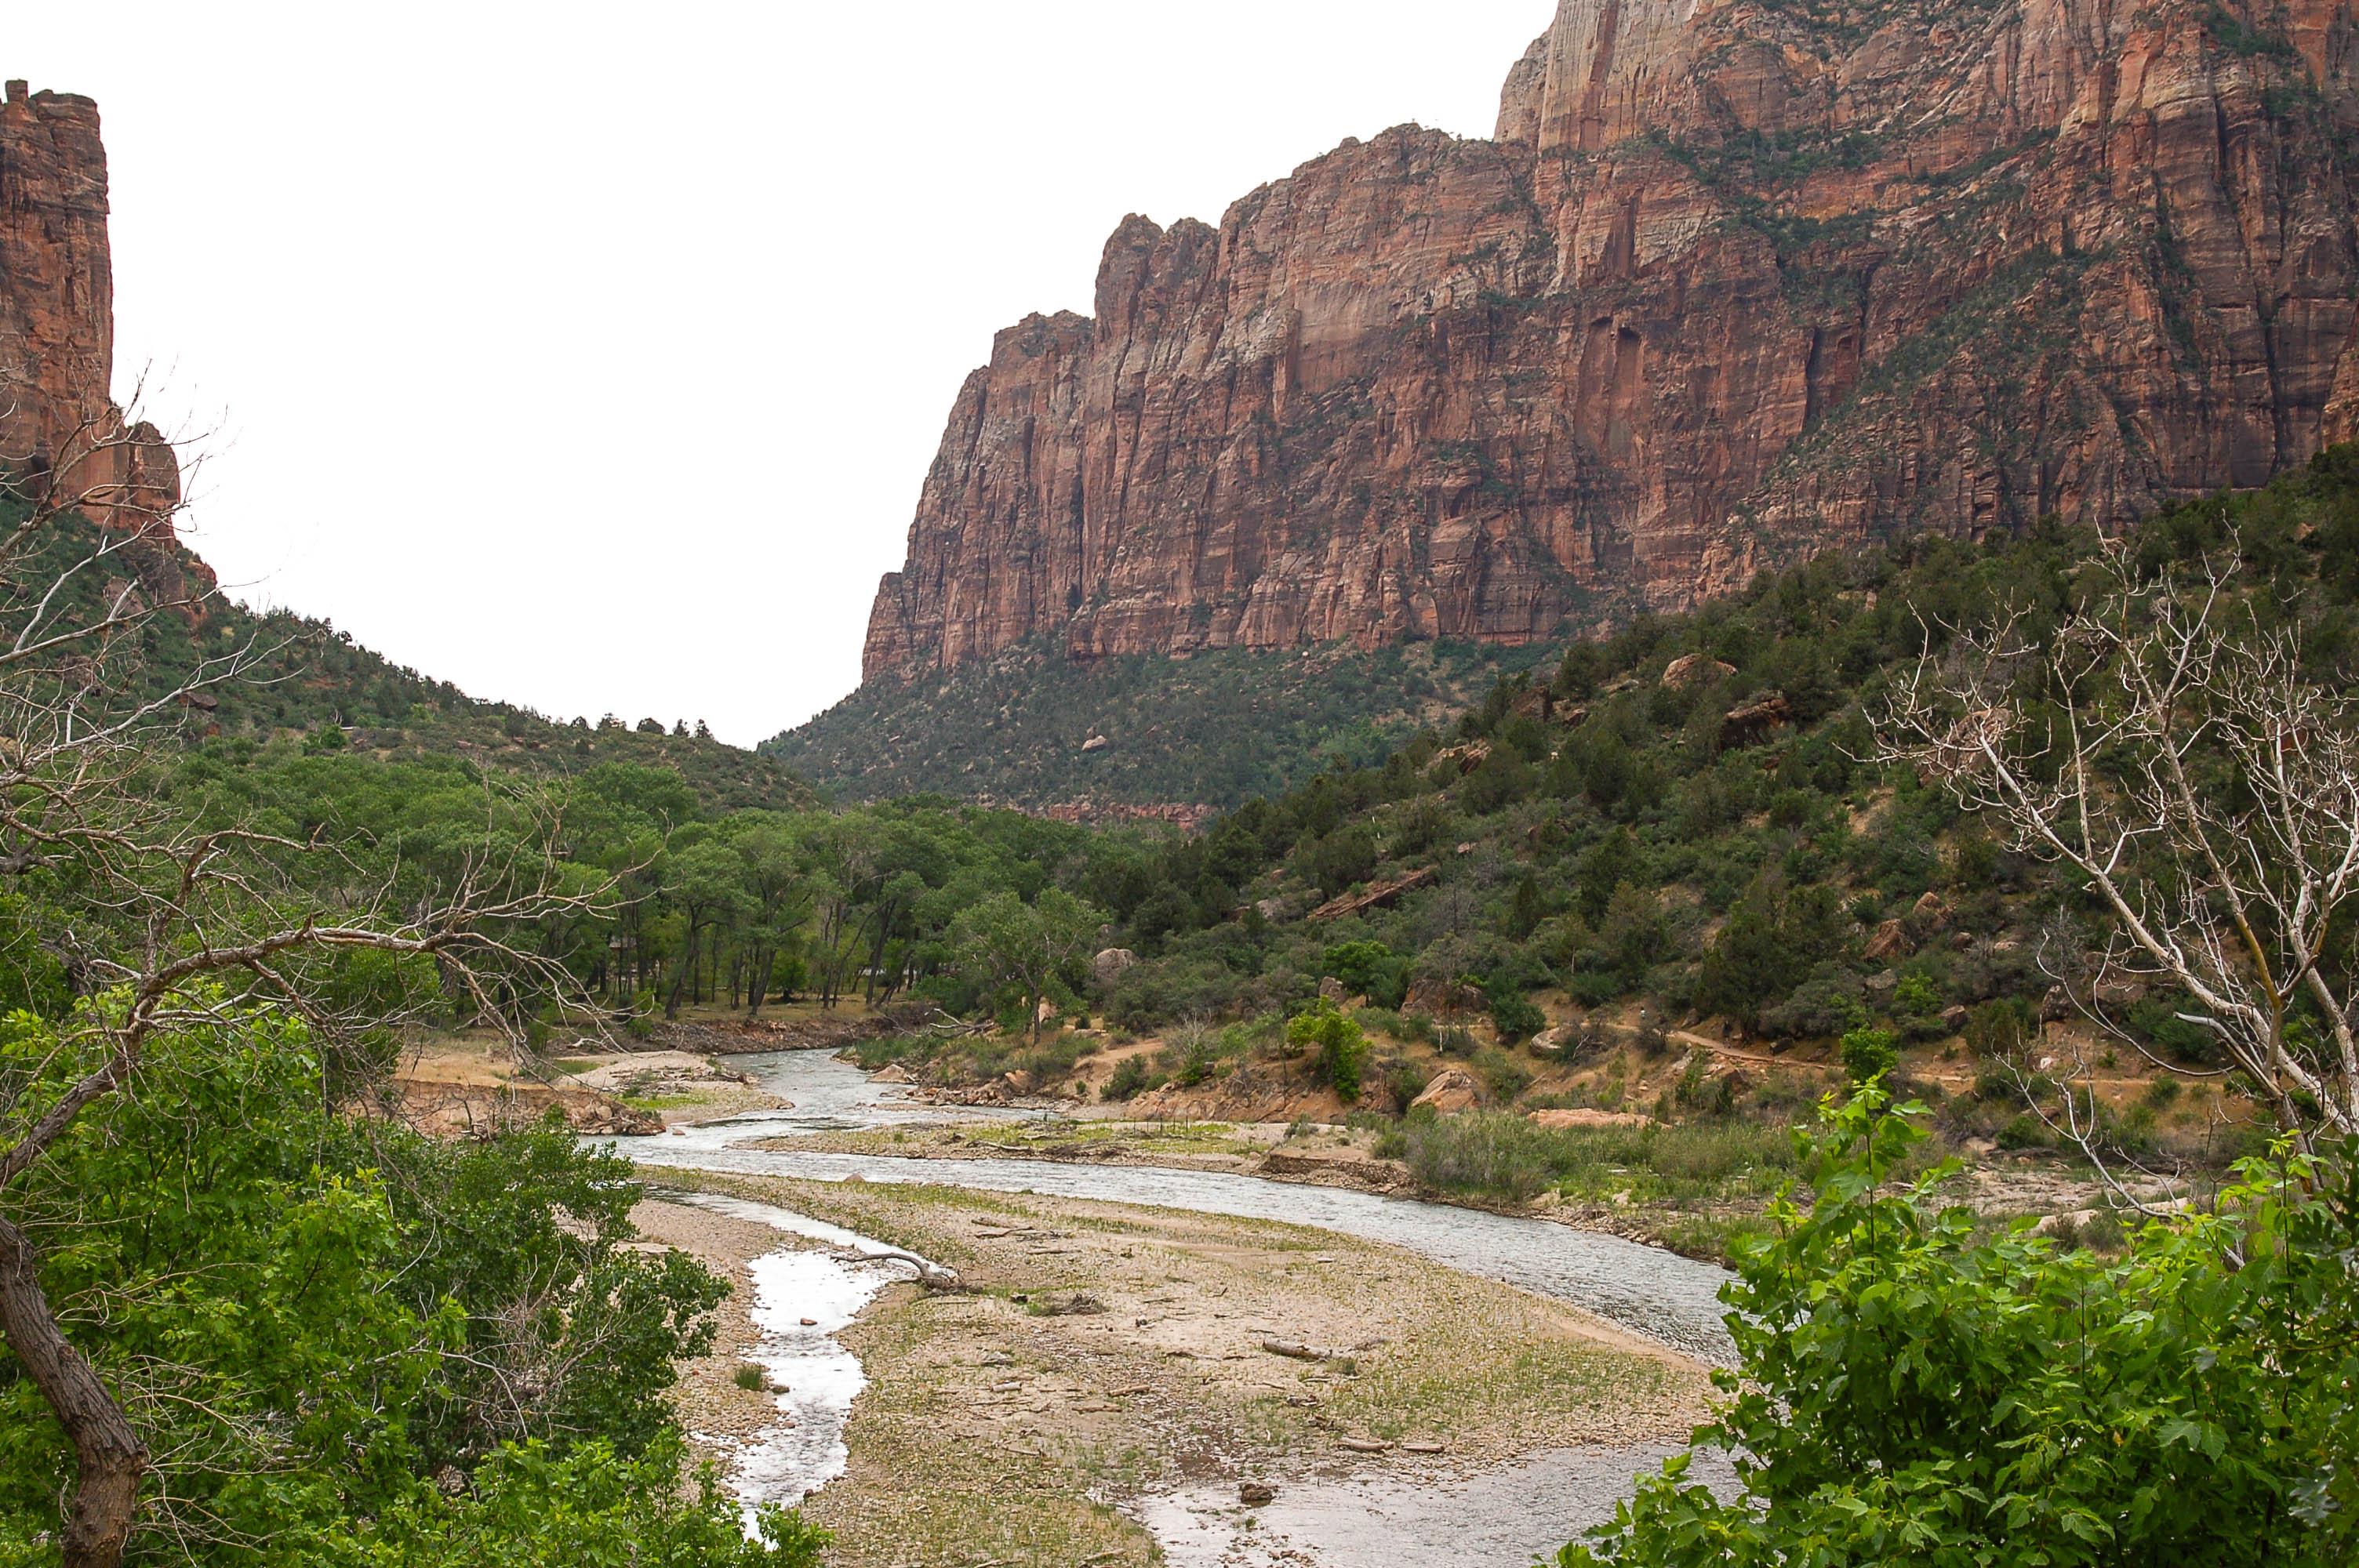 Stream in Zion National Park